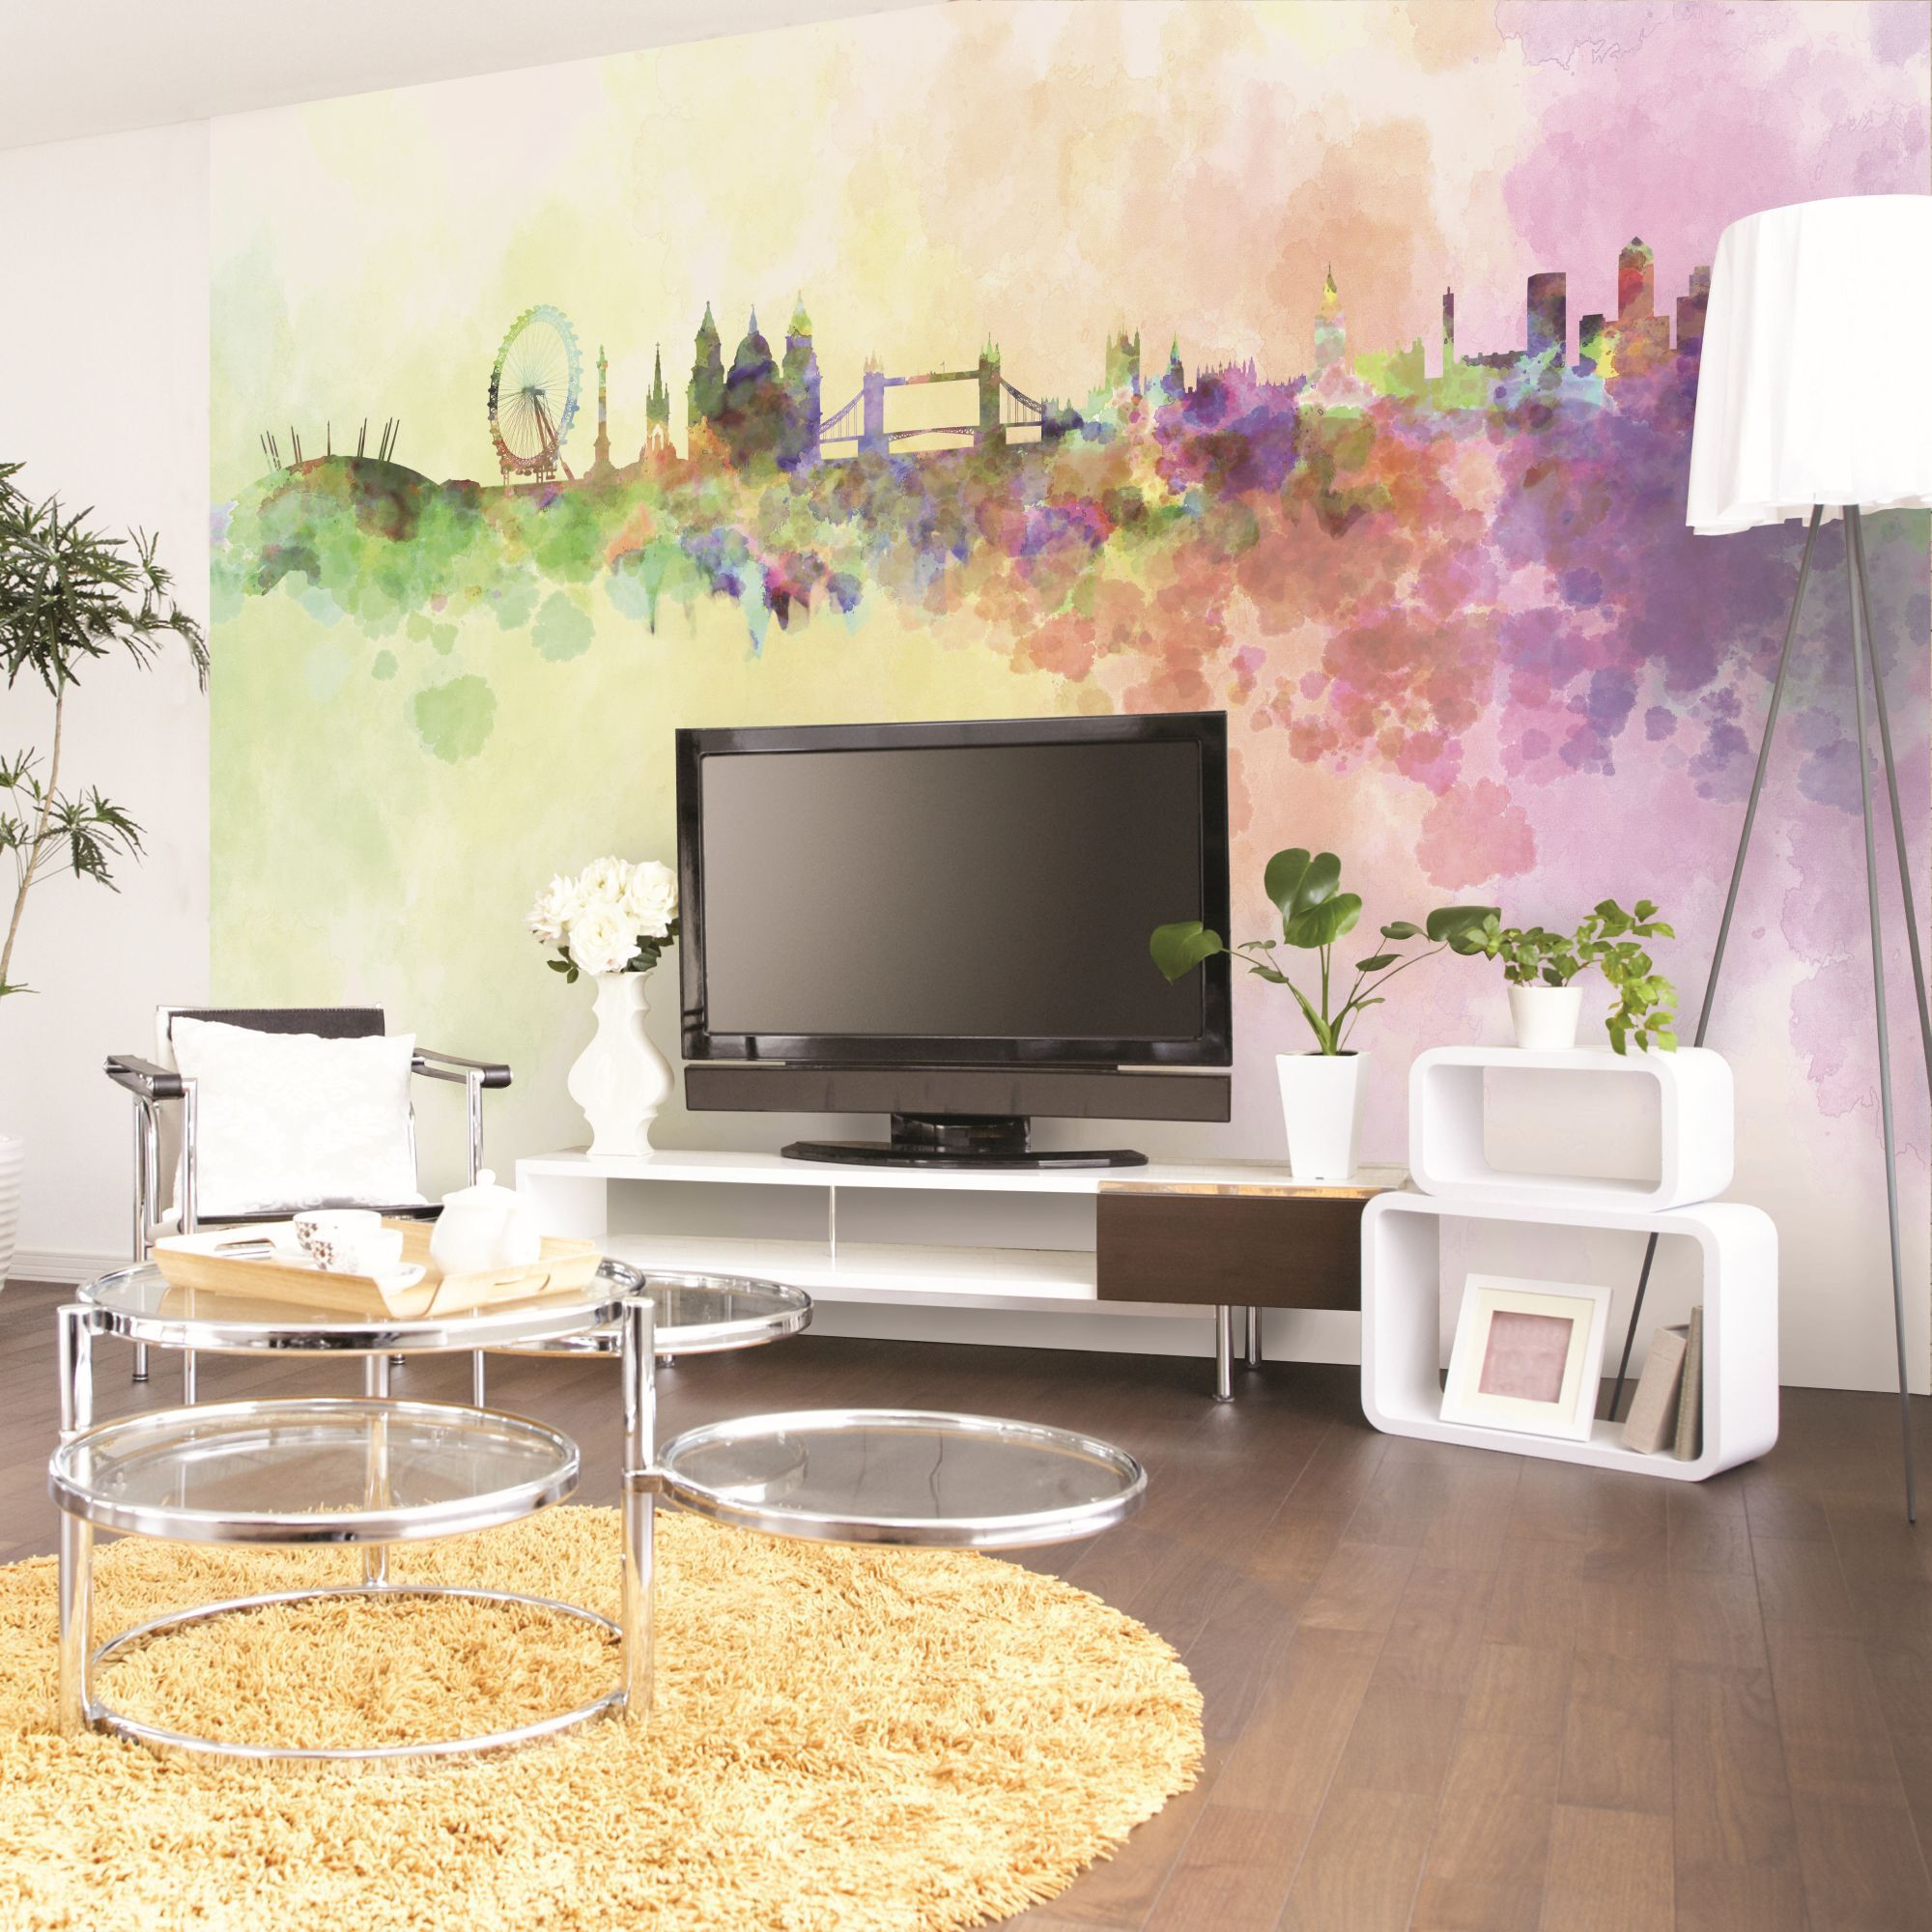 london wall mural large